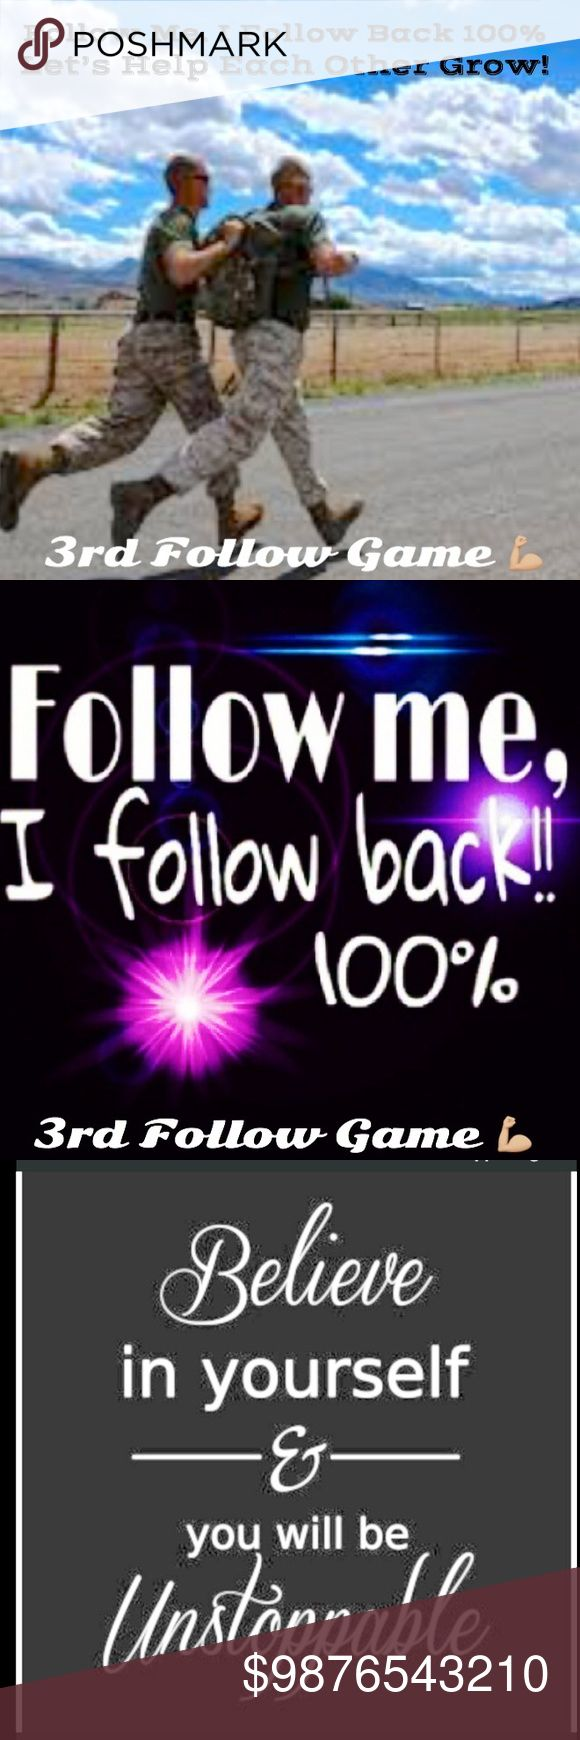 Follow Game #3 FACT: More Followers = More Sales.  Let's Work together to achieve both. I'm a former marine. I don't leave my people behind. If you follow me I WILL FOLLOW YOU! Posh Love Other